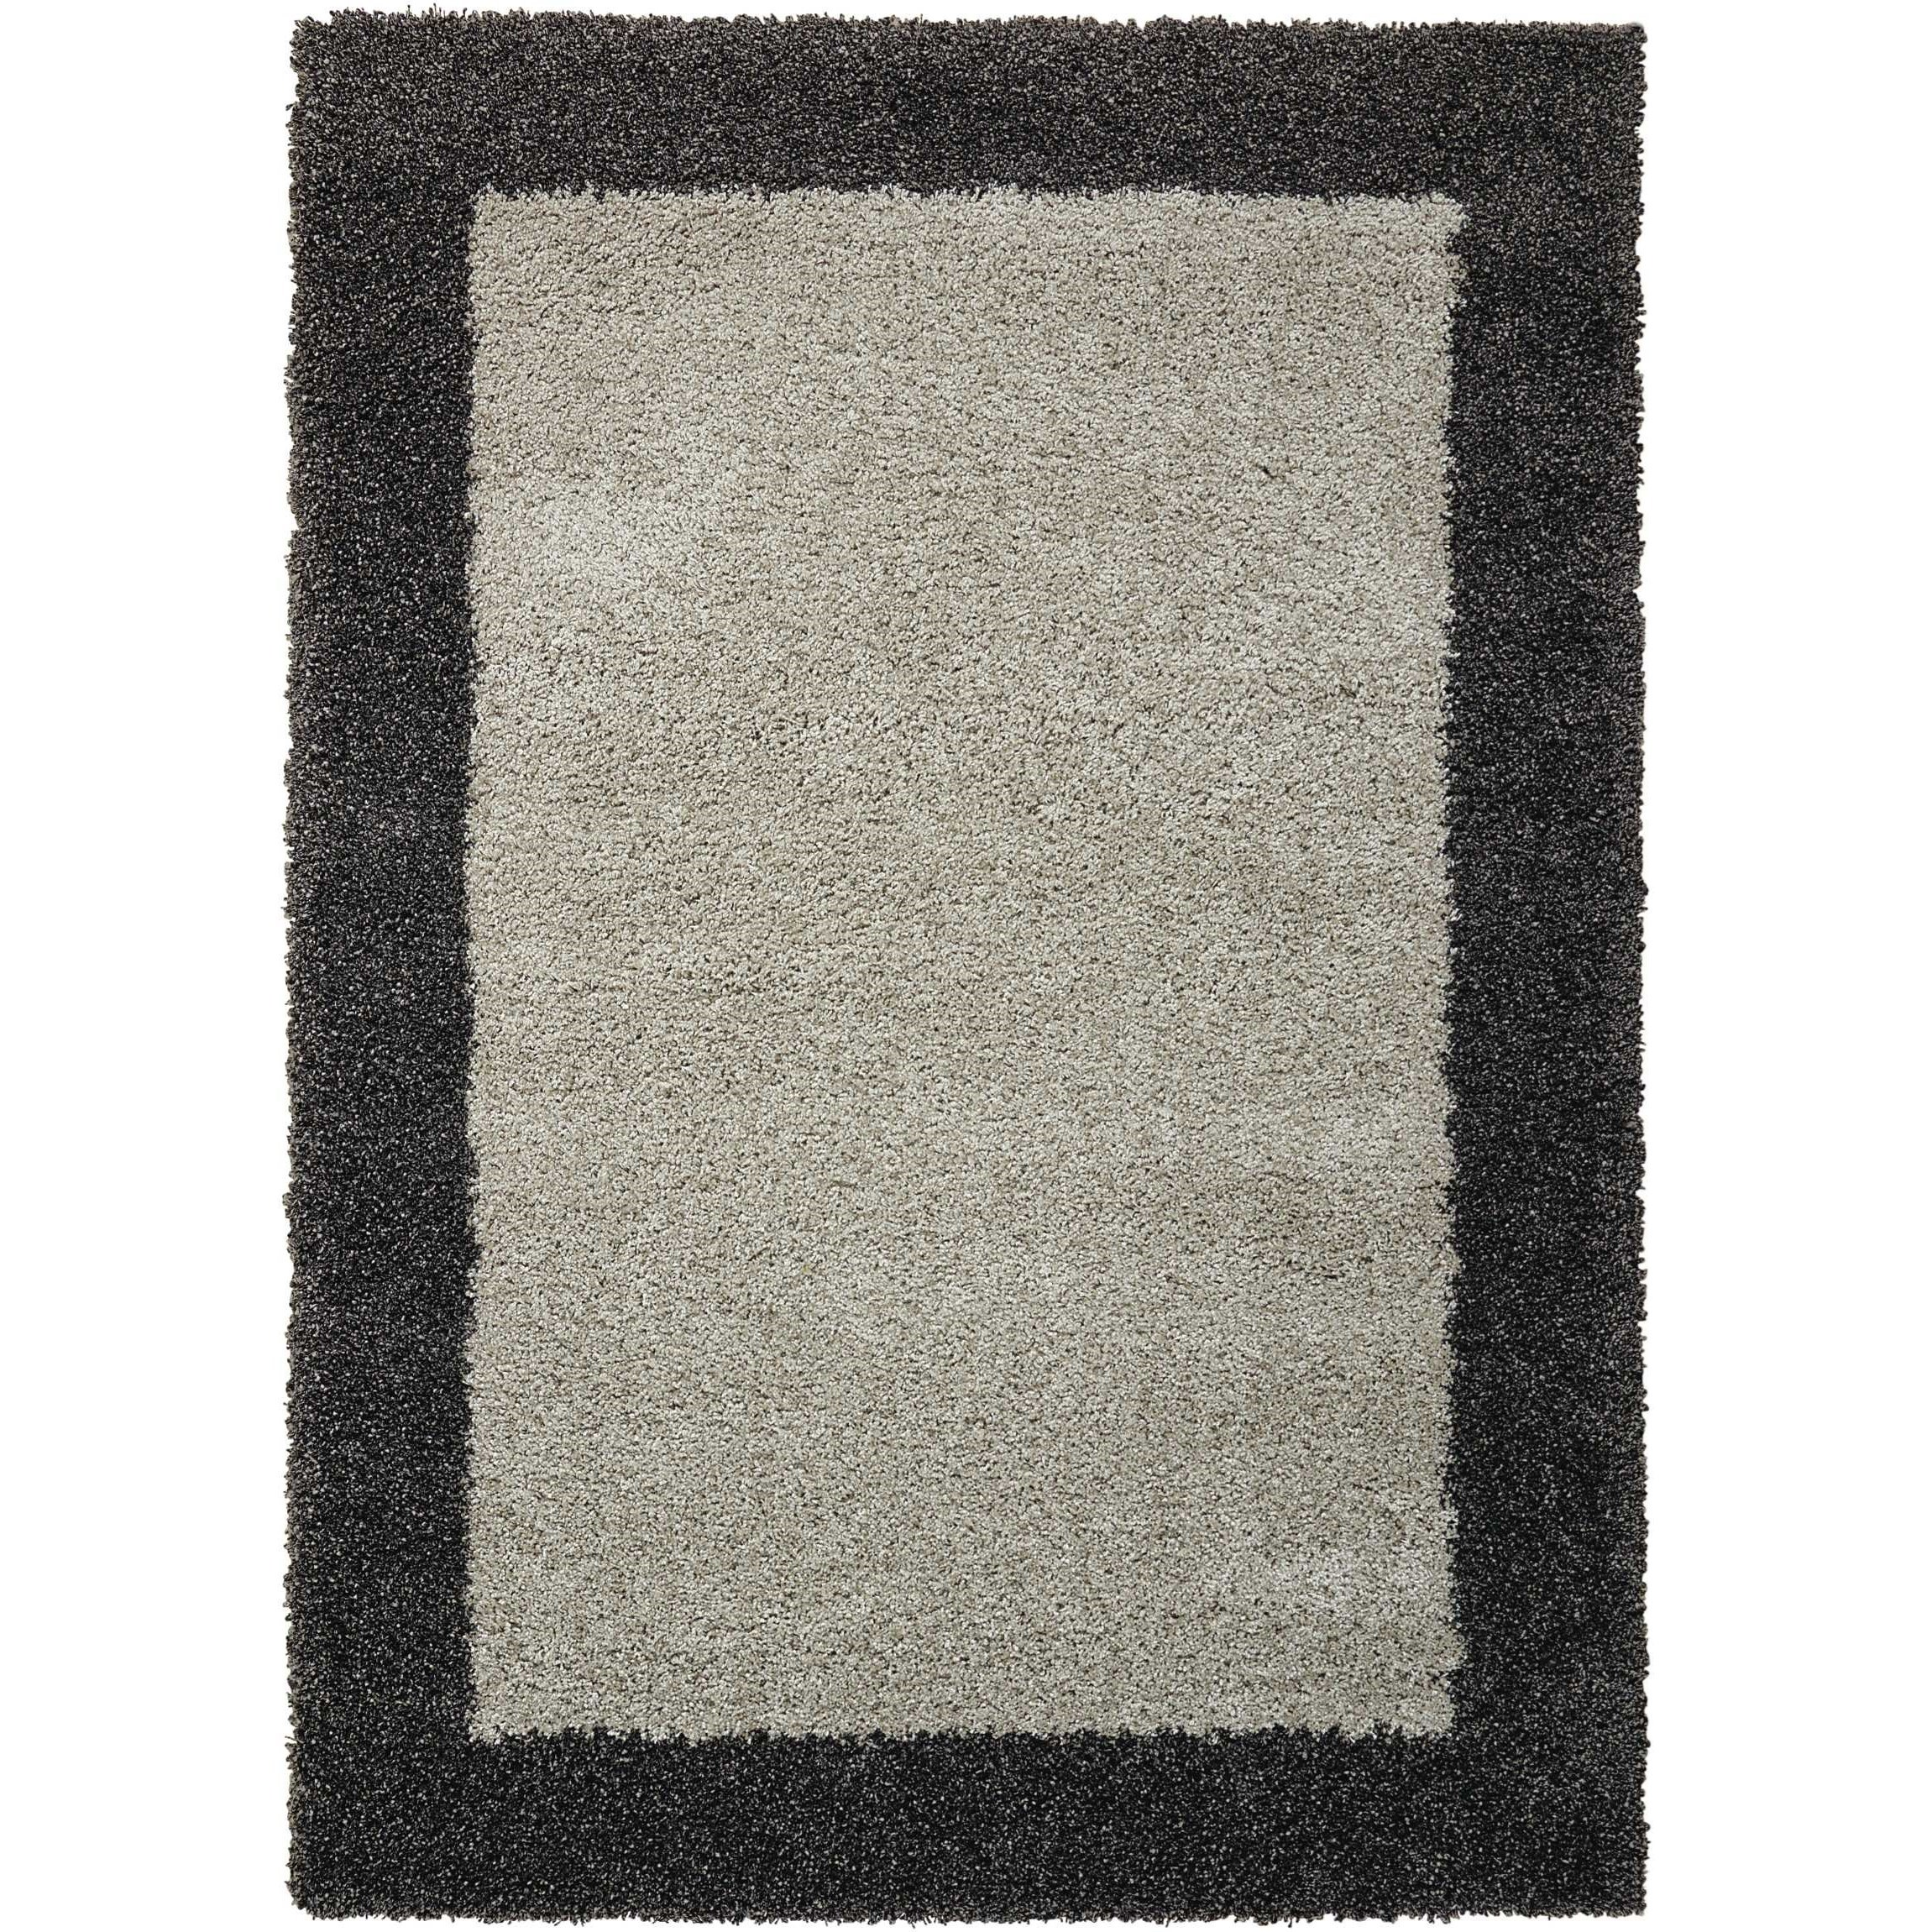 Amore Amore AMOR5 Grey 5'x8' Area Rug by Nourison at Home Collections Furniture